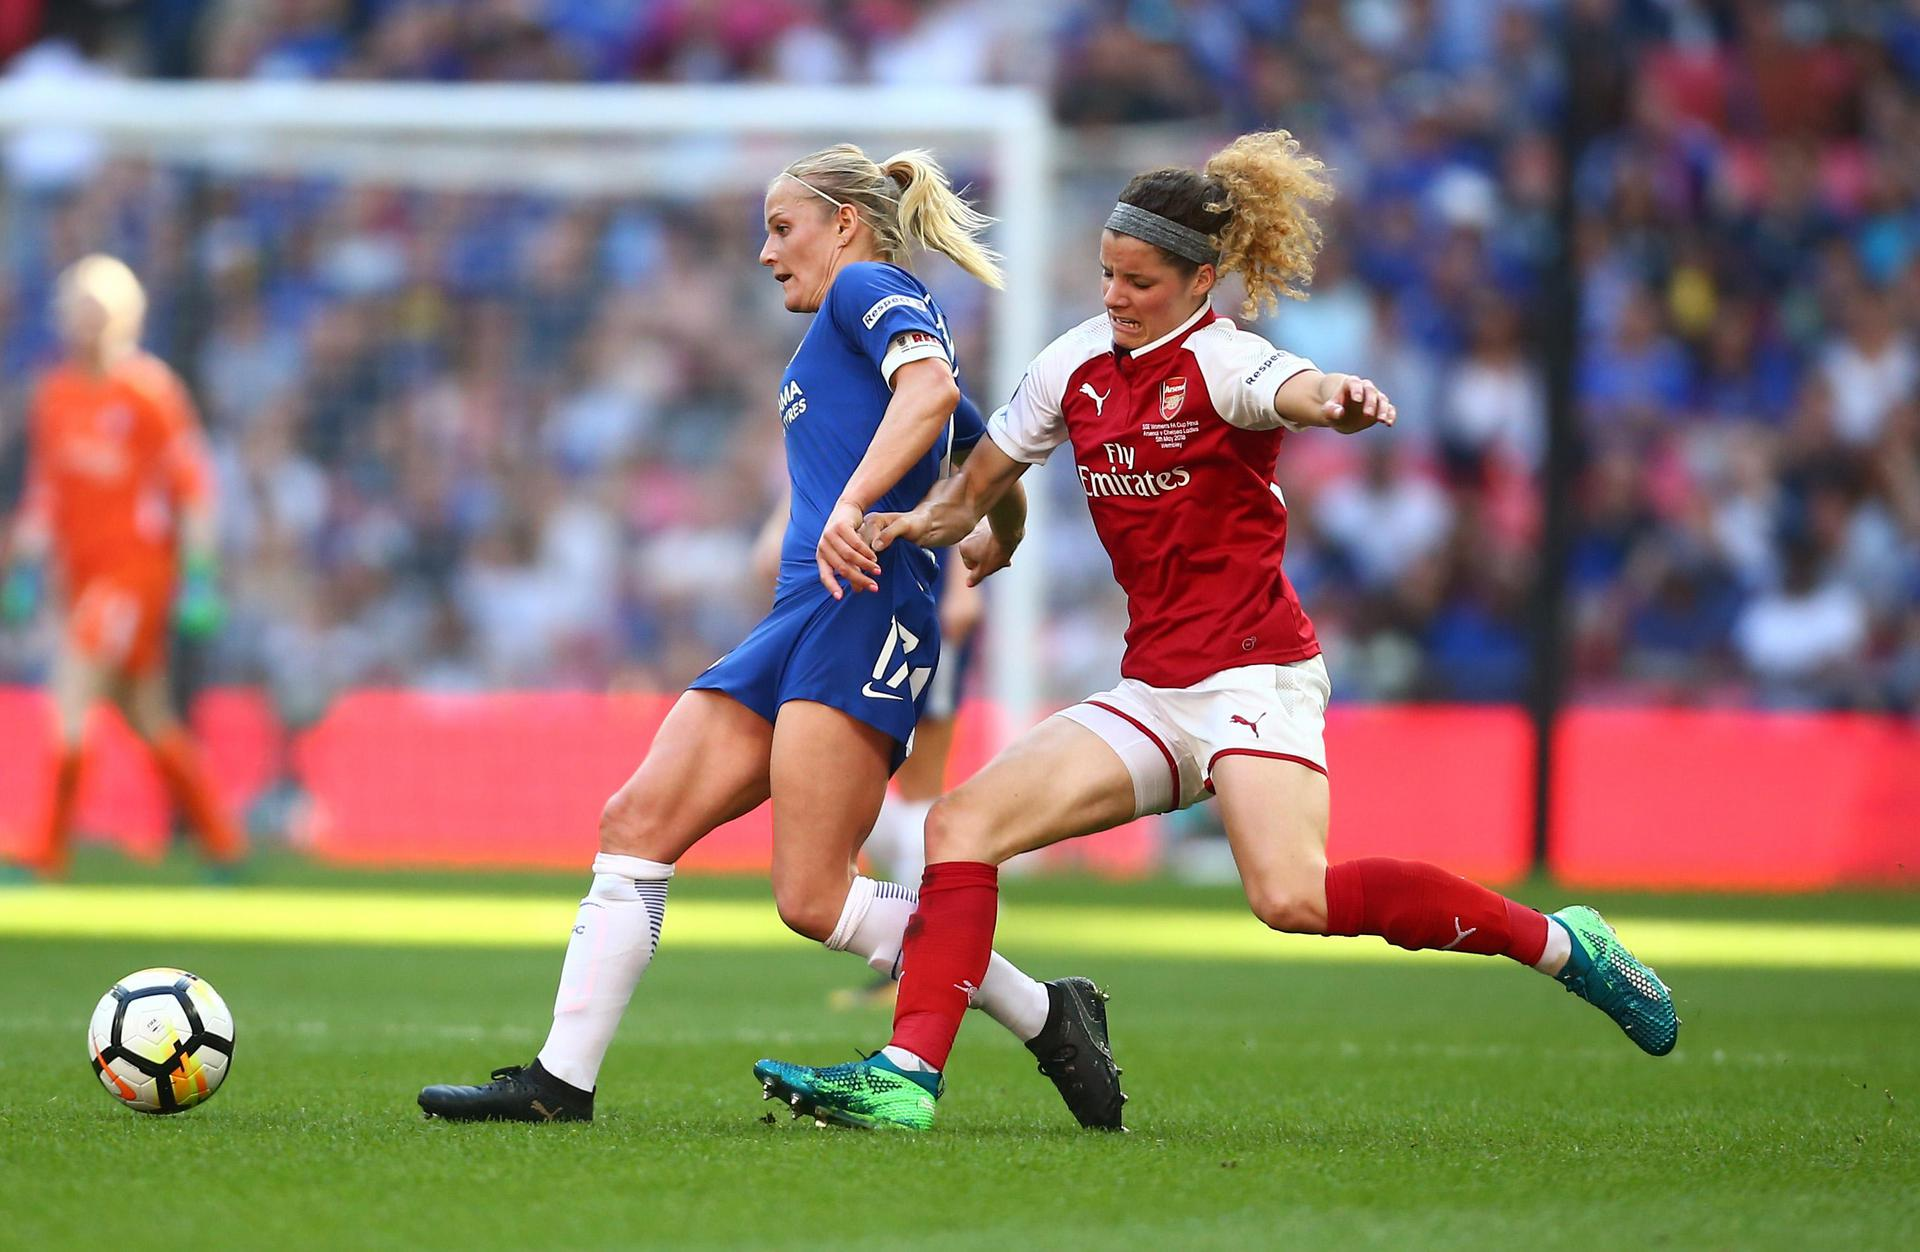 Chelsea v Arsenal in the Women's FA Cup final